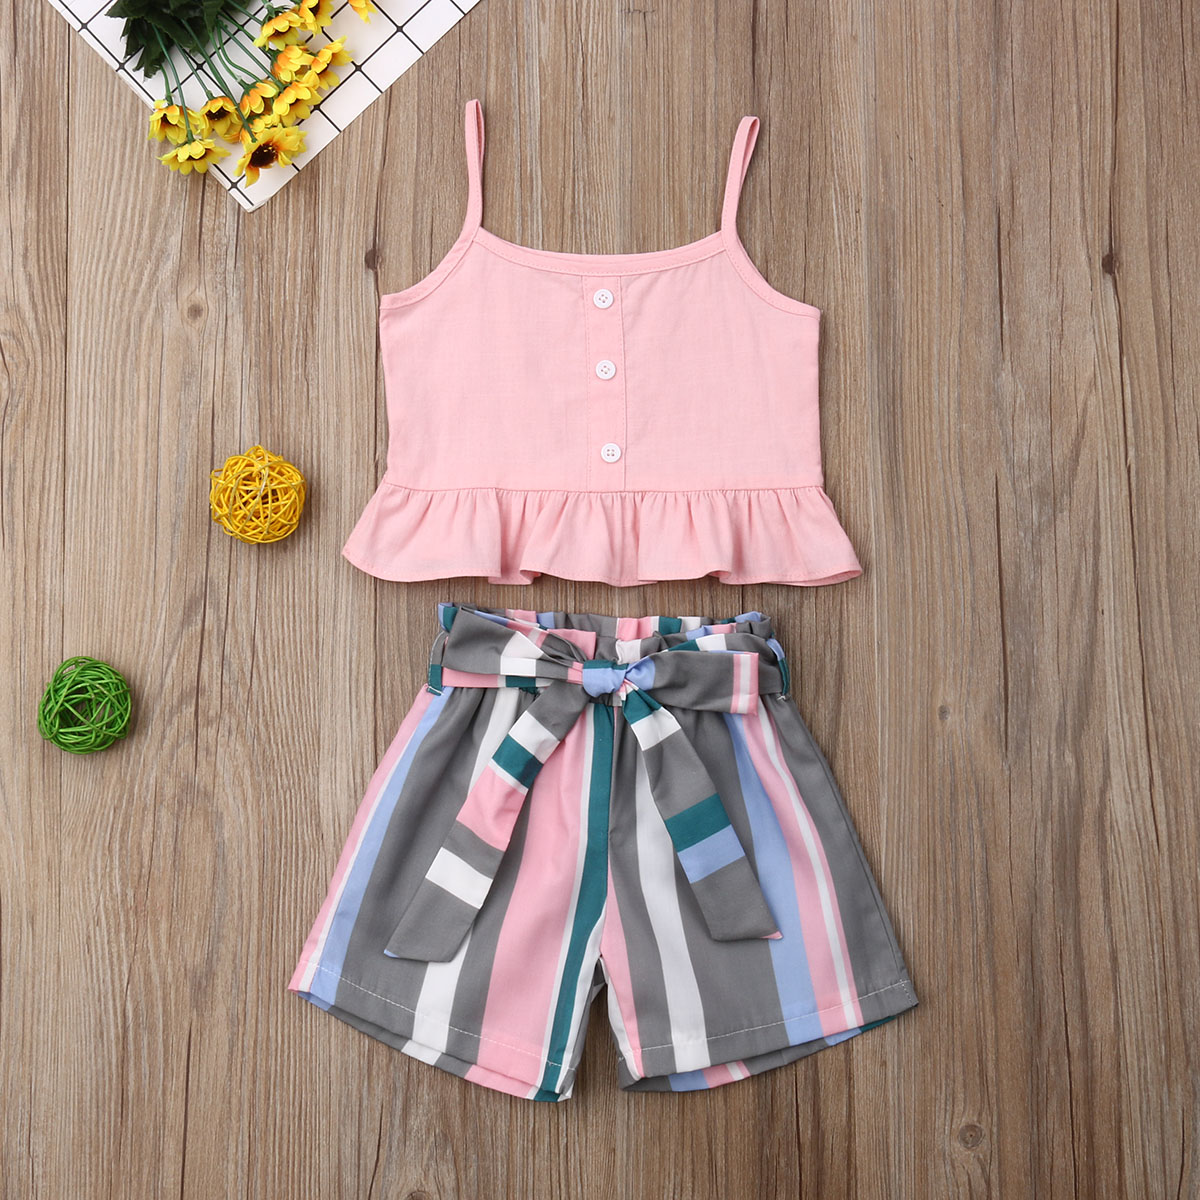 Pudcoco Summer Toddler Baby Girl Clothes Sleeveless Ruffle Strap Crop Tops Striped Short Pants 2Pcs Outfits Clothes 1-6Y